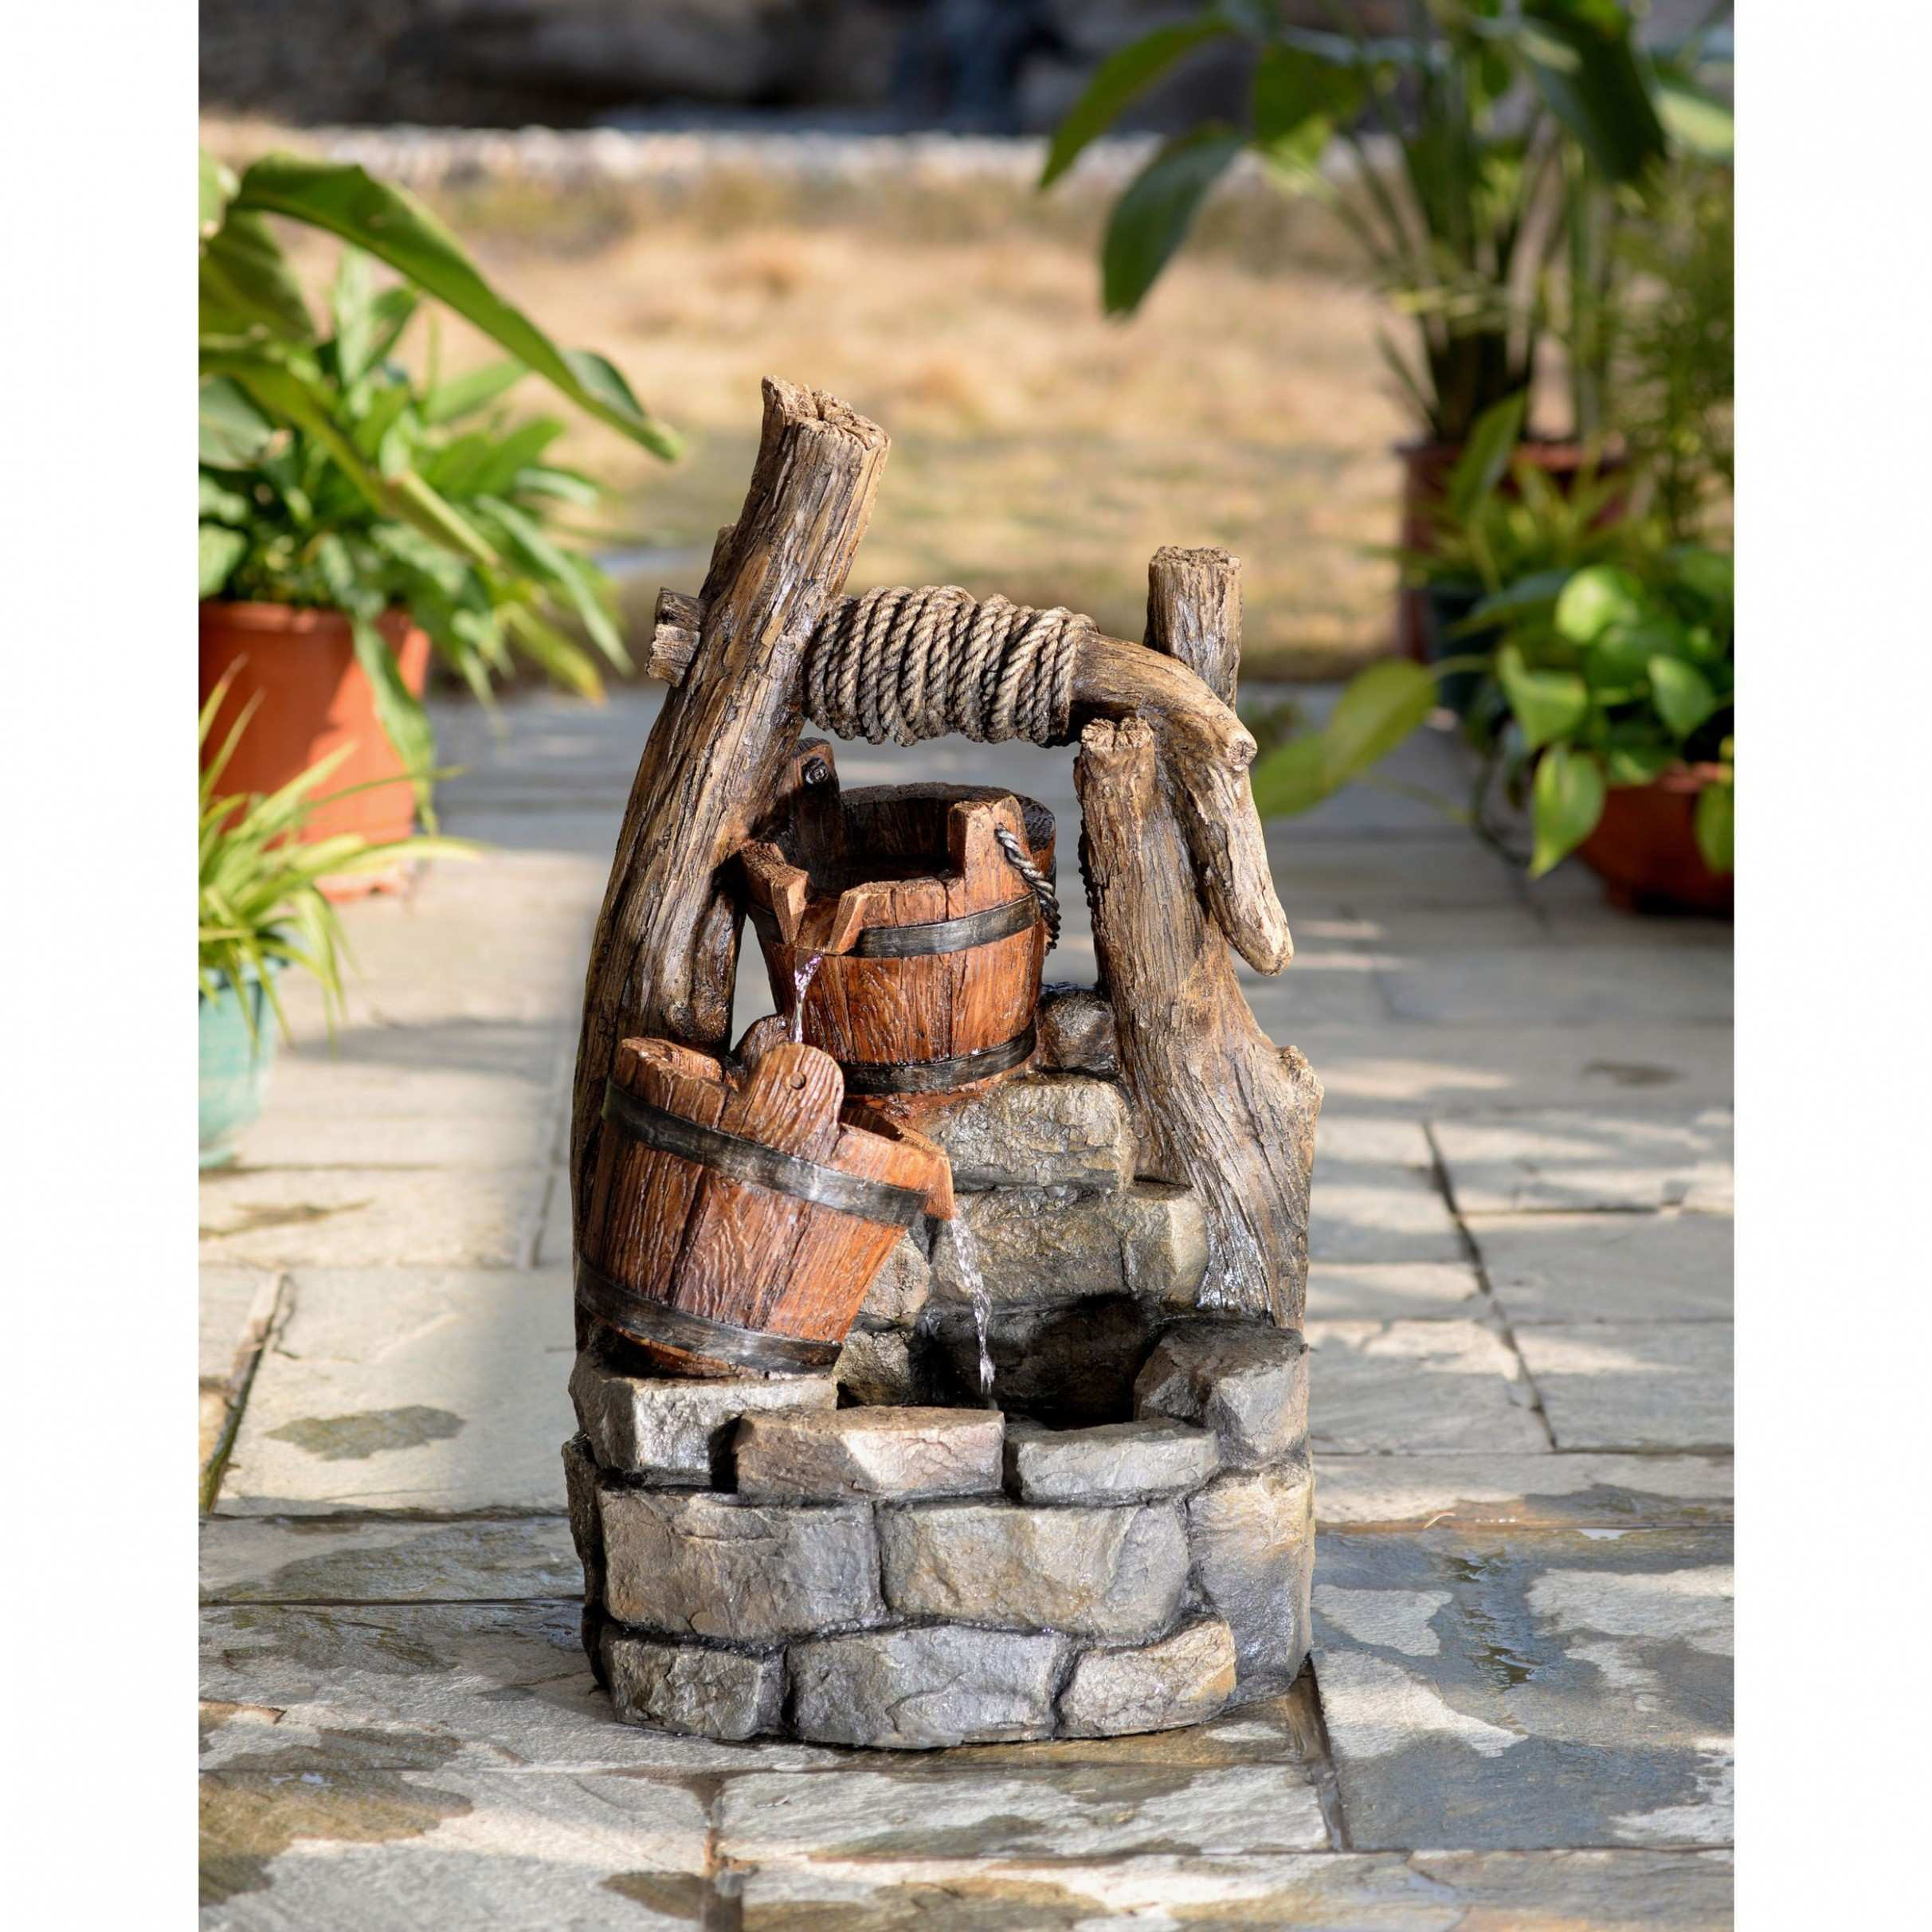 Fantastic Water Fountain Design Jeco Tree Trunk and Pots Water